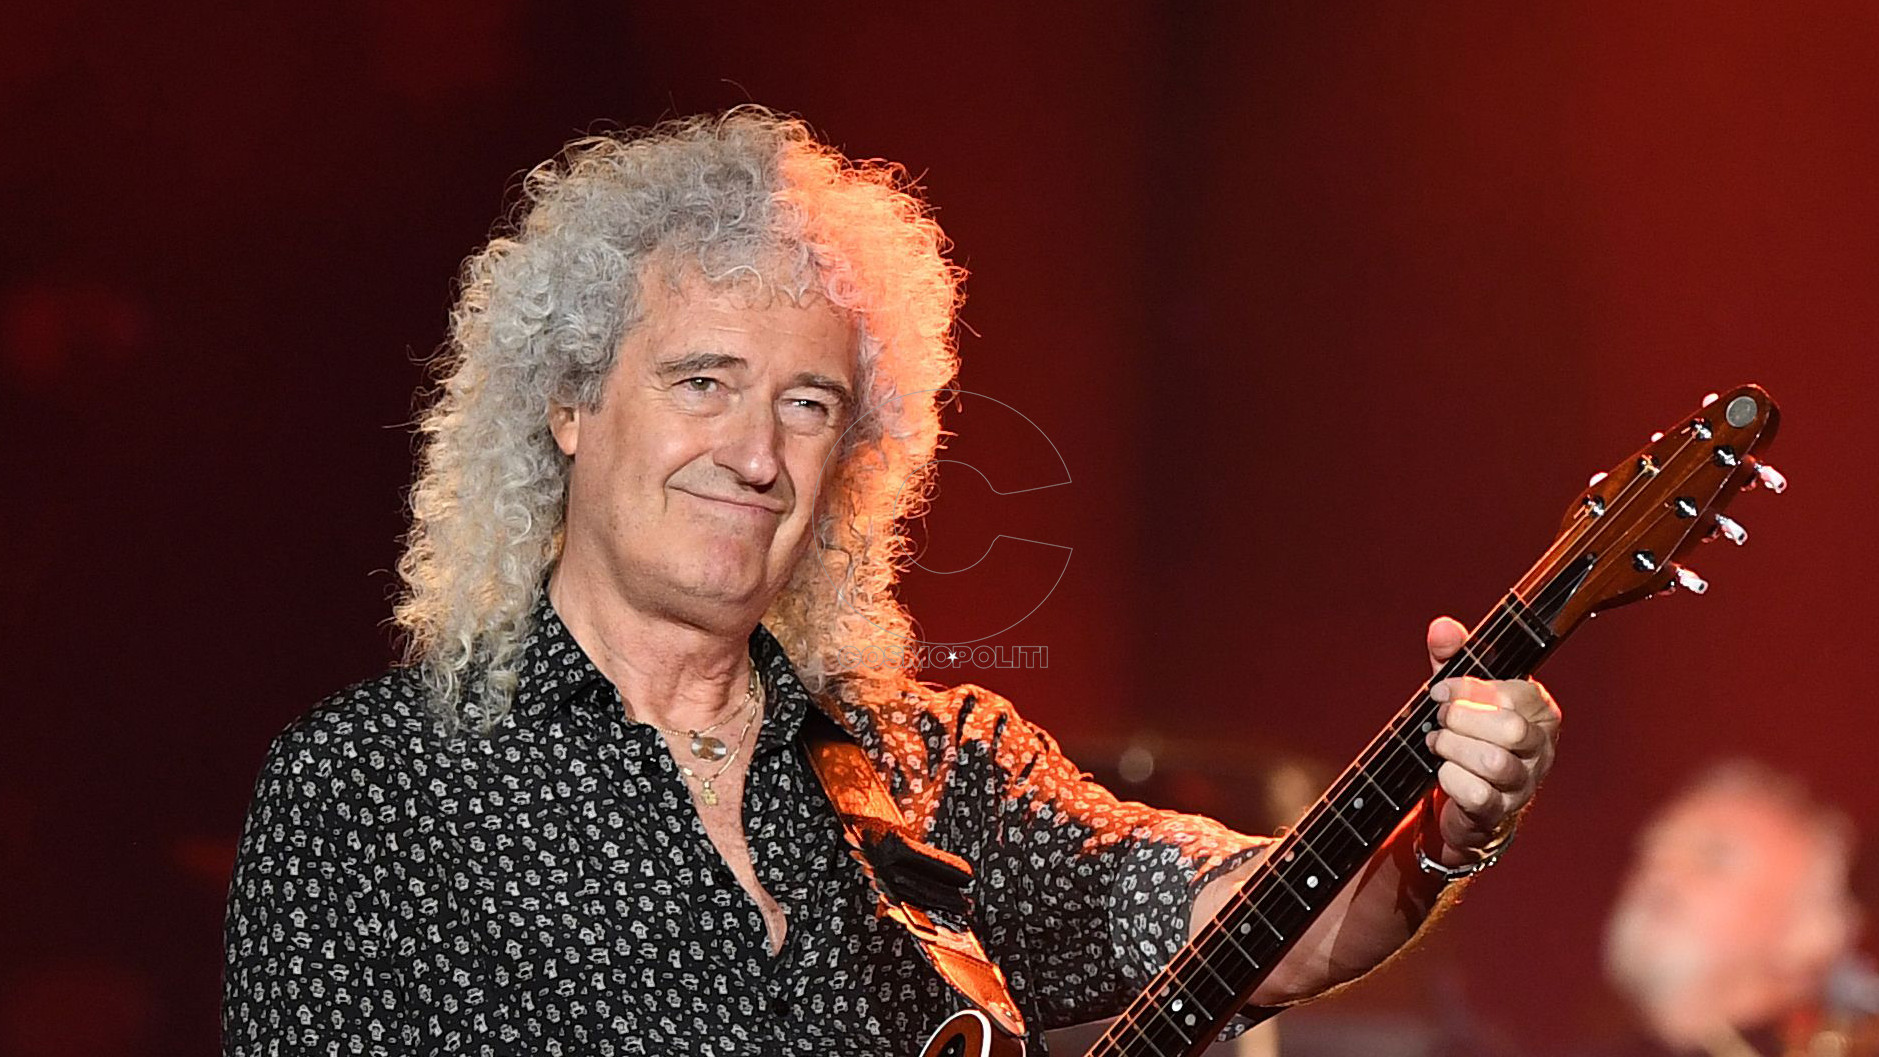 Mandatory Credit: Photo by JOEL CARRETT/EPA-EFE/Shutterstock (10557994cm) Brian May of Queen performs during the Fire Fight Australia bushfire relief concert at ANZ Stadium in Sydney, New South Wales, Australia, 16 February 2020. Thousands of people attended the concert, with 10 hours of musical performances, to raise funds for communities devastated by bushfires. Fire Fight Australia bushfire relief concert in Sydney - 16 Feb 2020